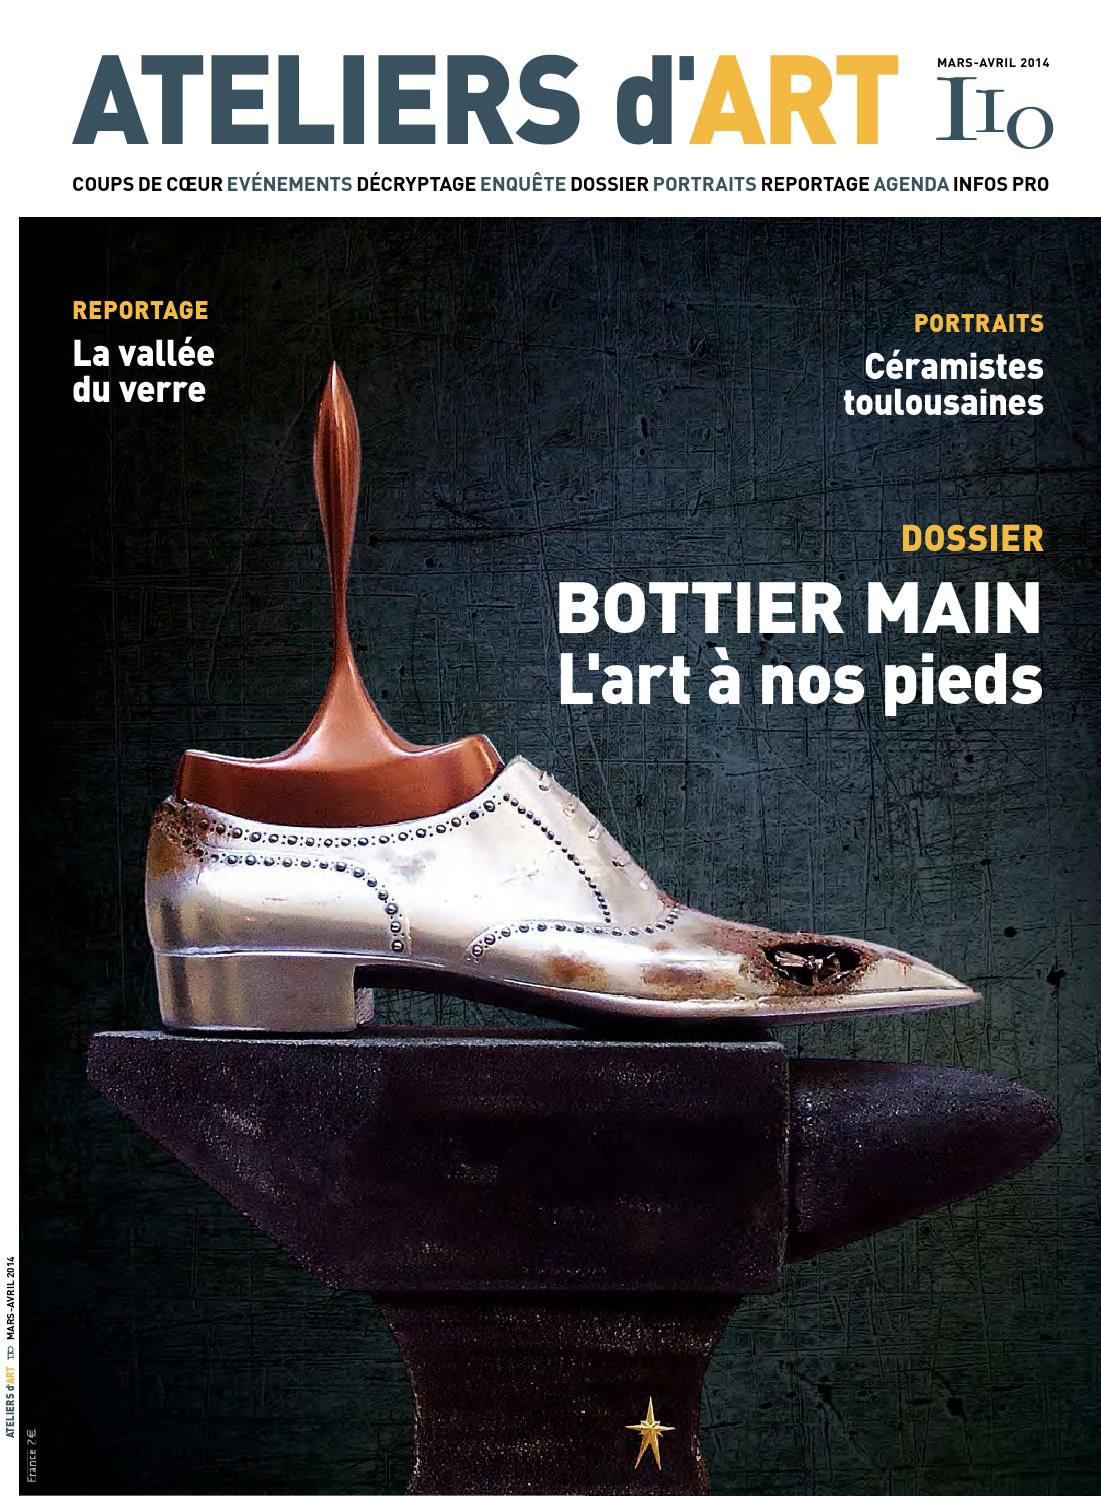 Issuu magazine ateliers d 39 art 110 by ateliers d 39 art de france - Atelier d art de france ...